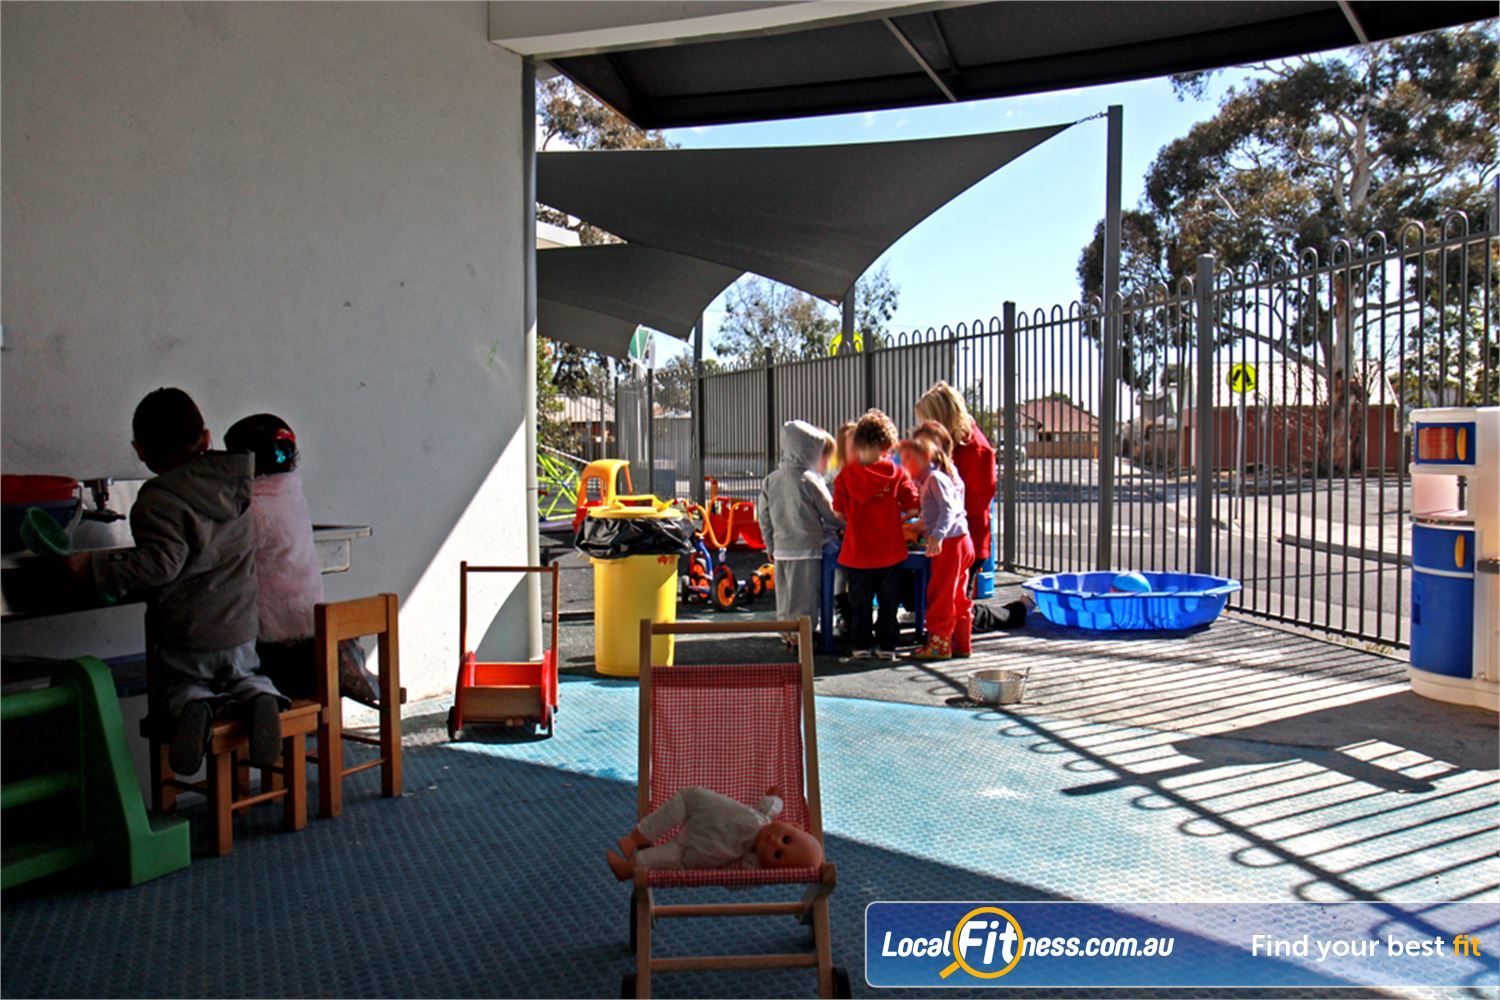 Ascot Vale Leisure Centre Near Moonee Ponds Ascot Vale provides an outdoor play are for your children.